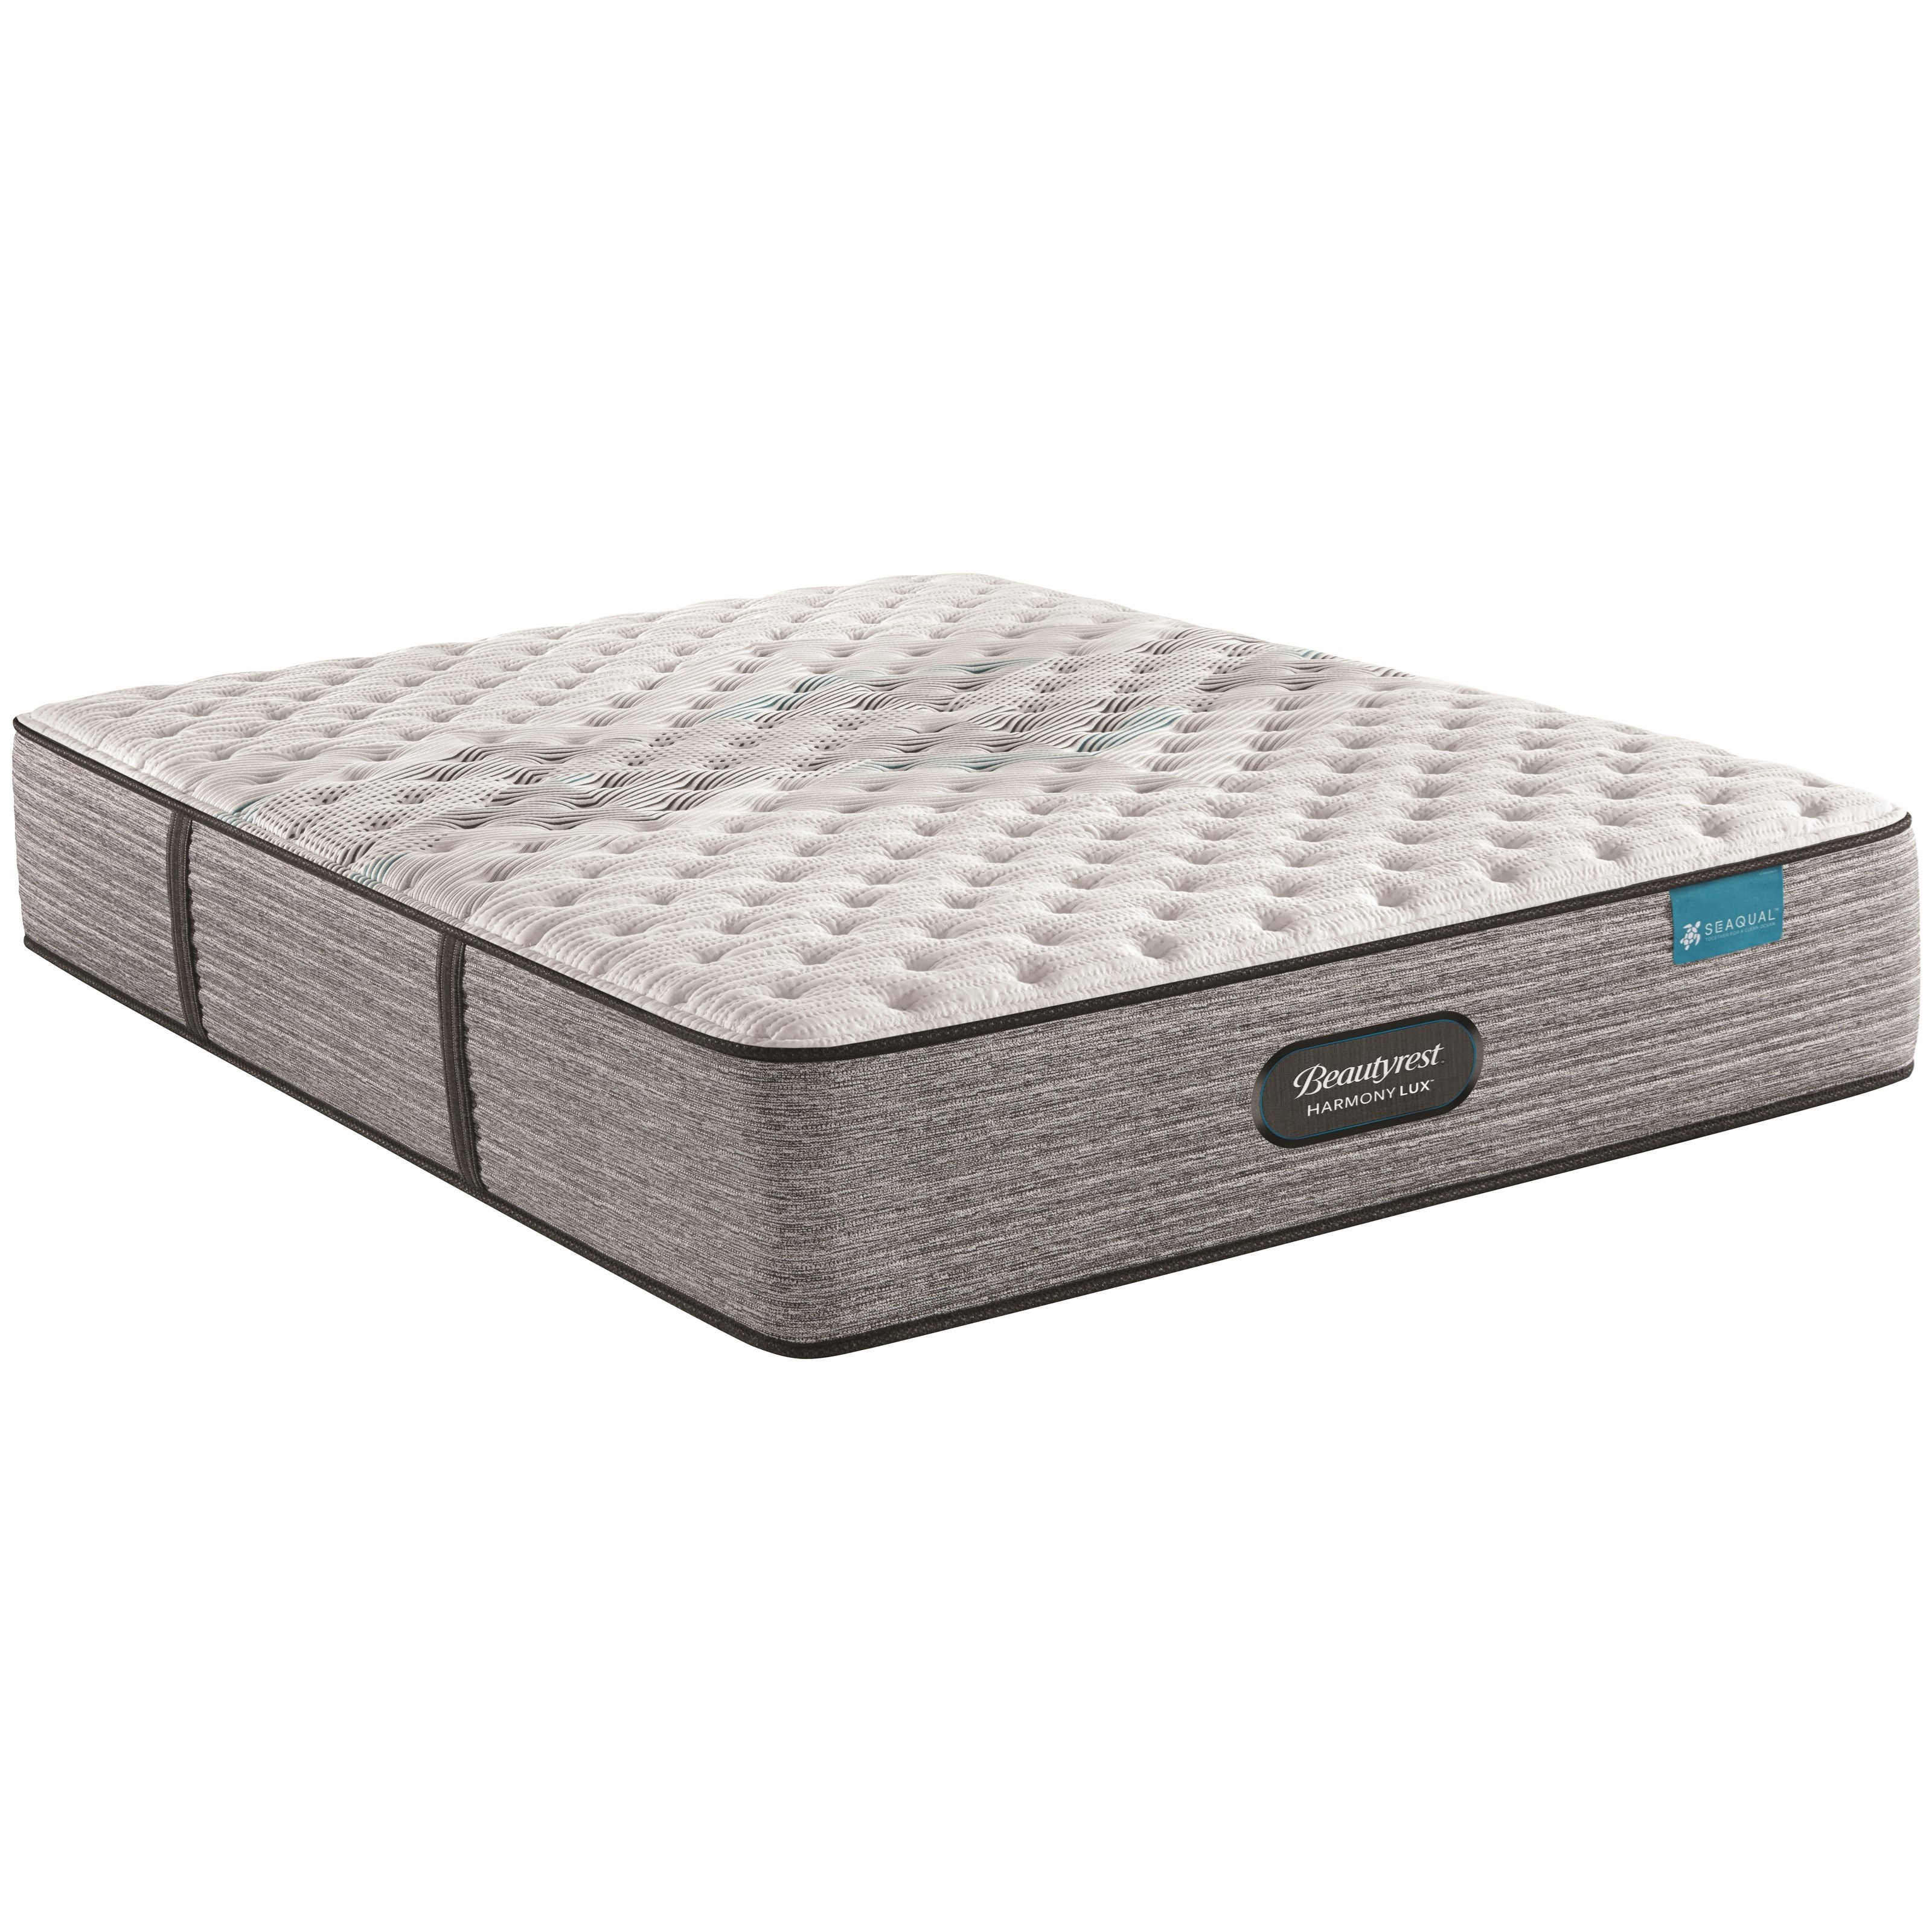 "Carbon Extra Firm Full 13 1/2"" Extra Firm Mattress by Beautyrest at Darvin Furniture"